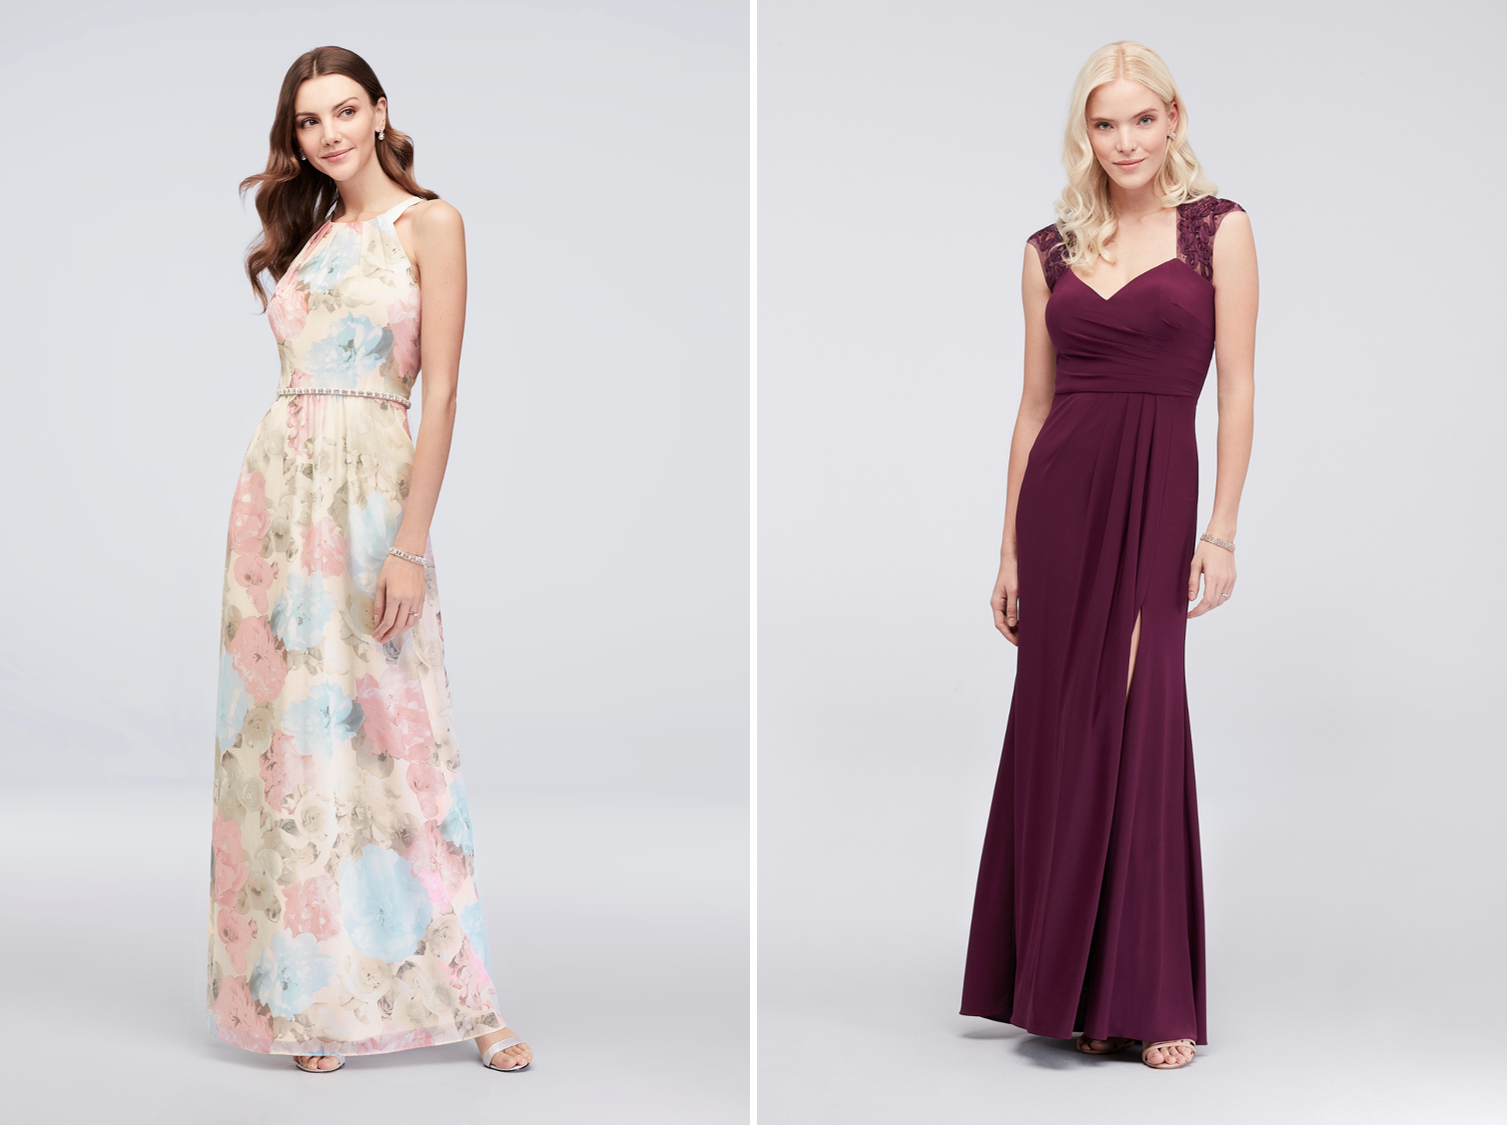 Mother of the Bride Dresses for Different Body Types | Minimize Your Hips